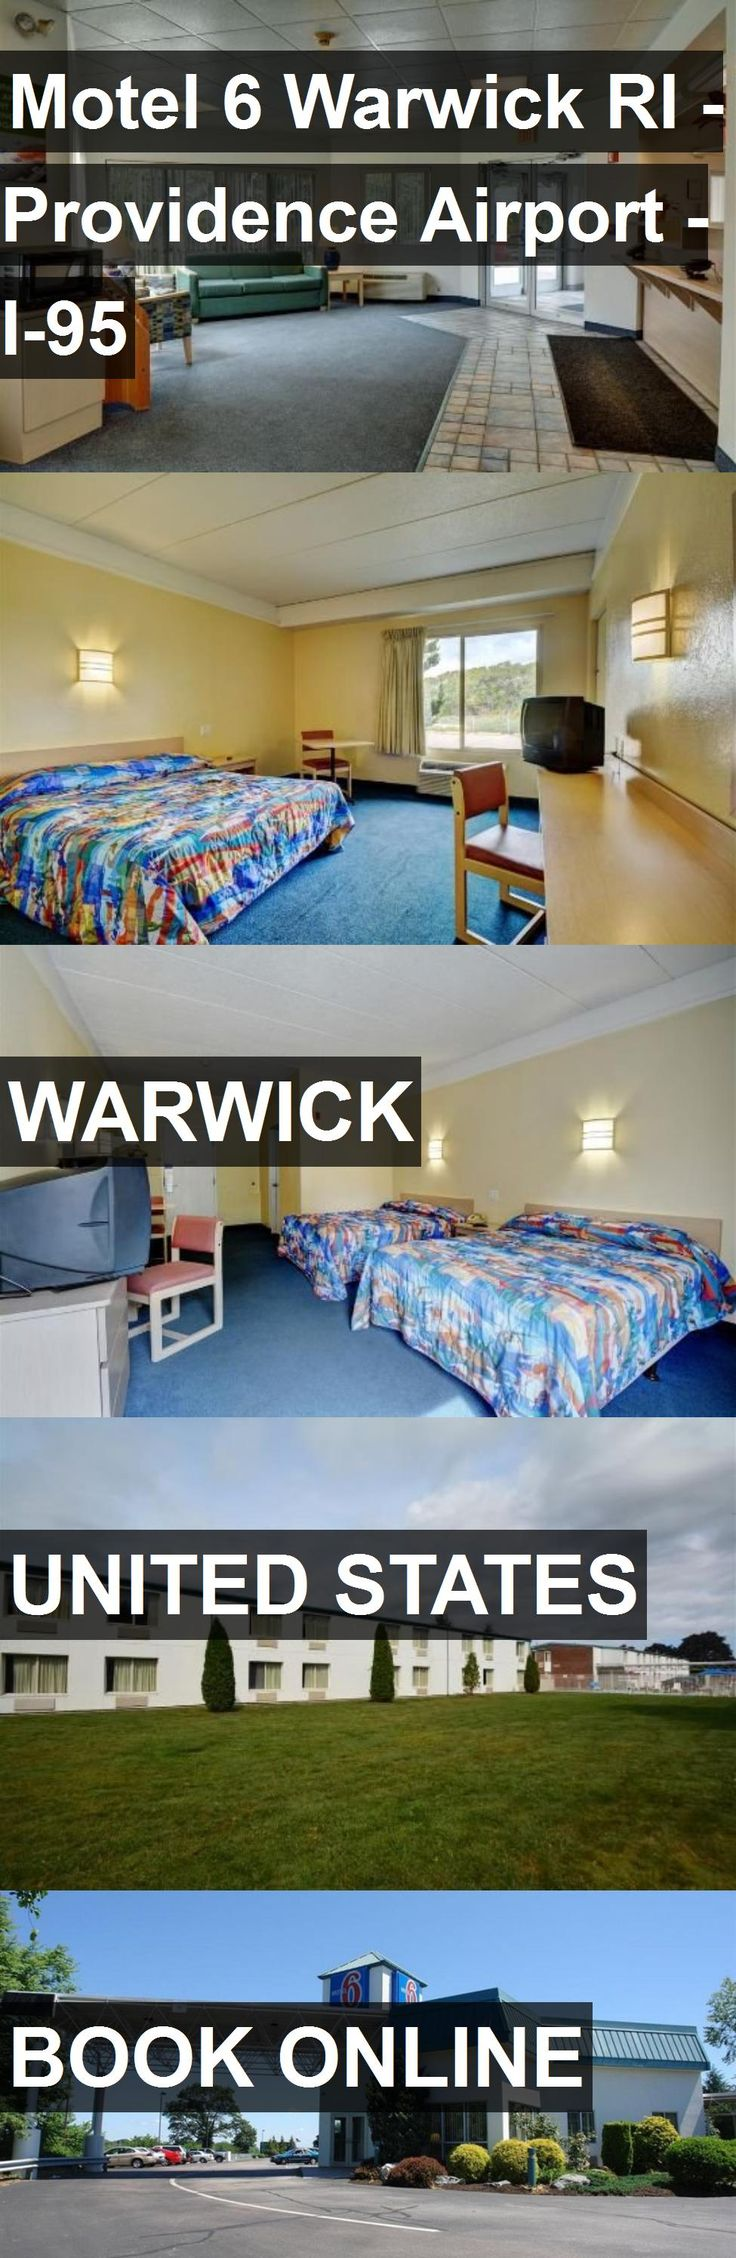 Hotel Motel 6 Warwick RI - Providence Airport - I-95 in Warwick, United States. For more information, photos, reviews and best prices please follow the link. #UnitedStates #Warwick #travel #vacation #hotel